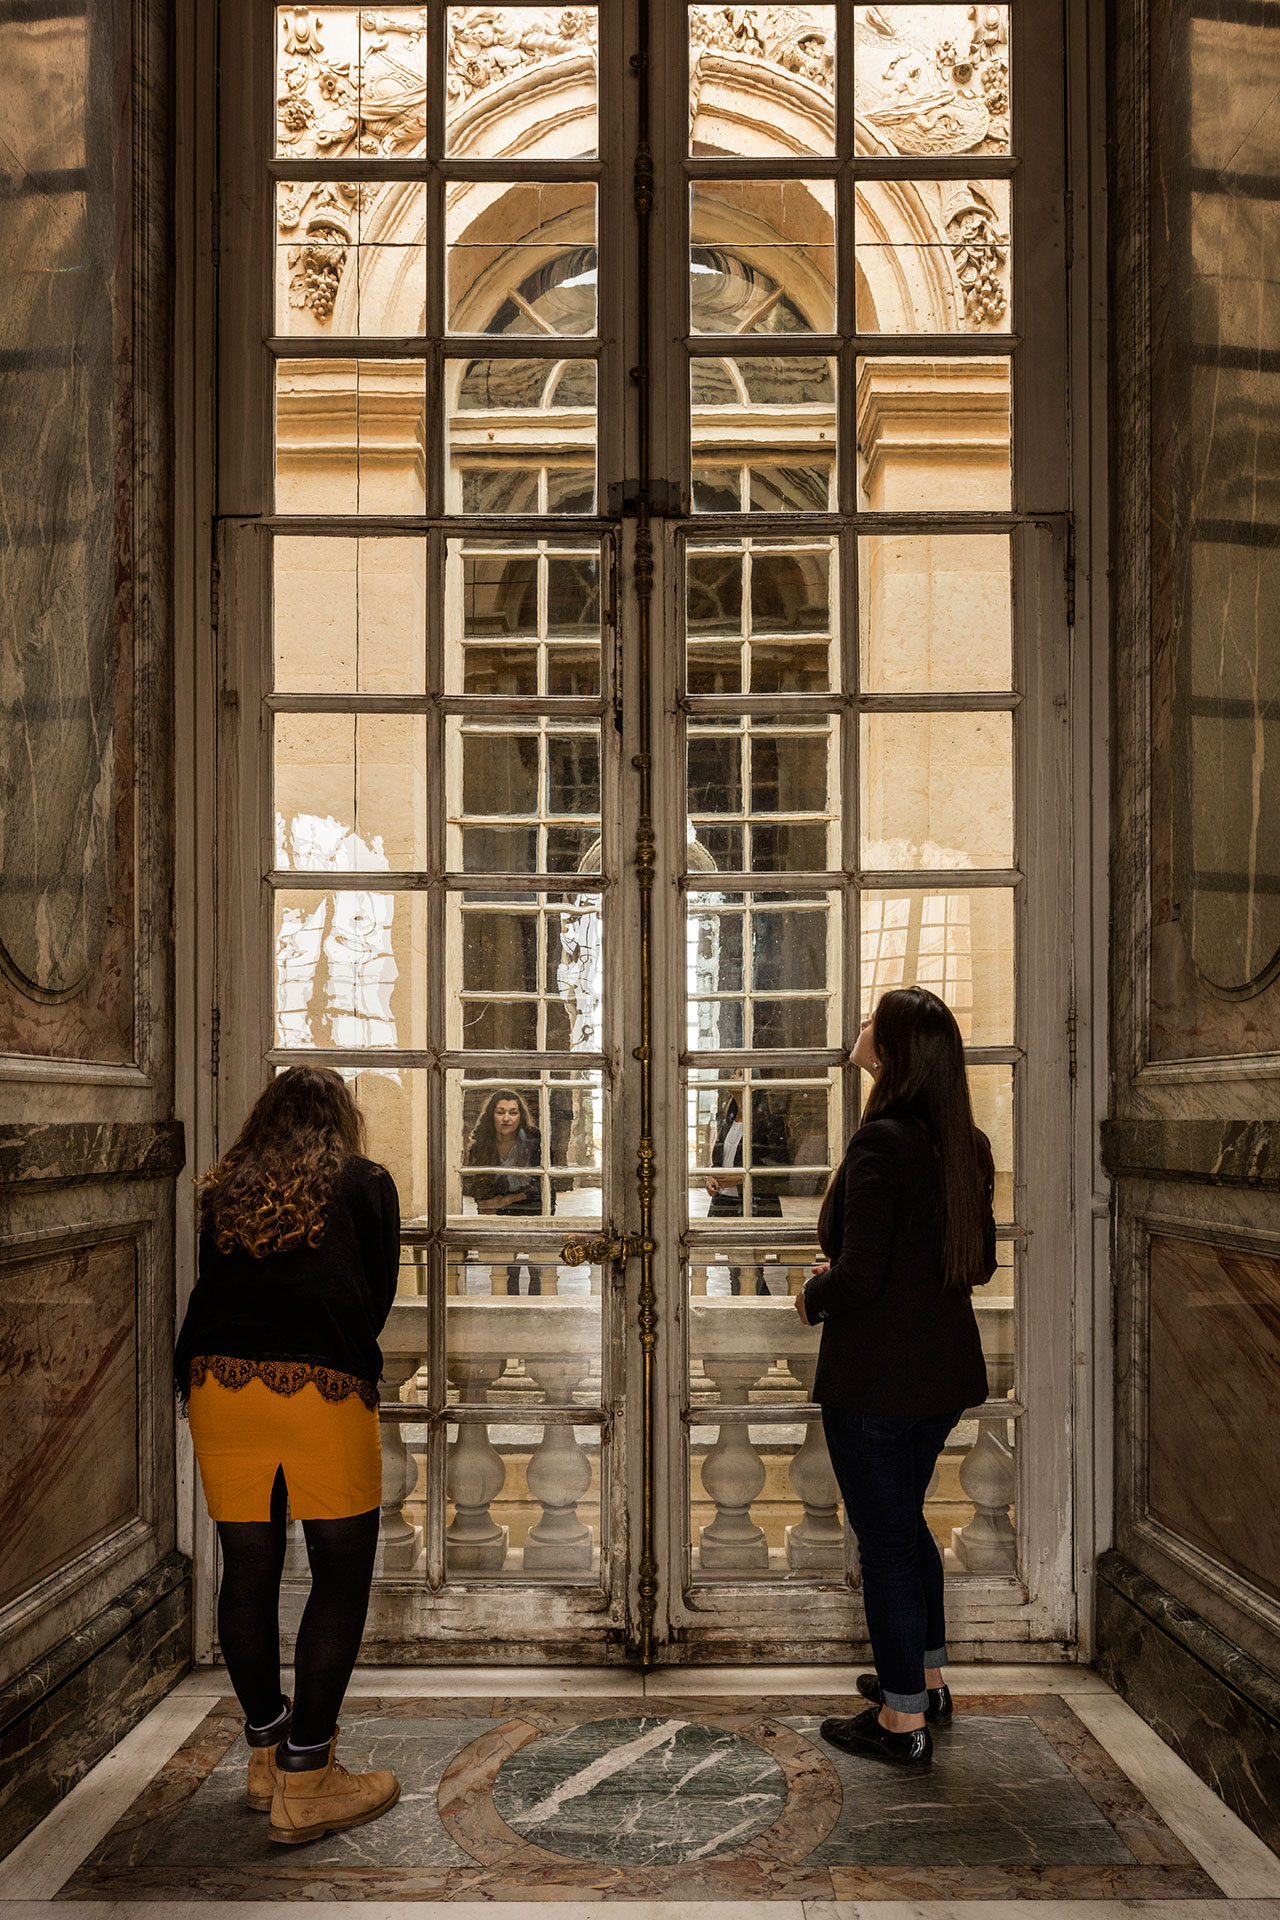 Olafur Eliasson, The curious museum, 2010. Mirror, scaffolding, steel, aluminium. 11.20 x 8.50 x 2.80 m . Palace of Versailles, 2016. Photo by Anders Sune Berg. Courtesy the artist; neugerriemschneider, Berlin; Tanya Bonakdar Gallery, New York © Olafur Eliasson.